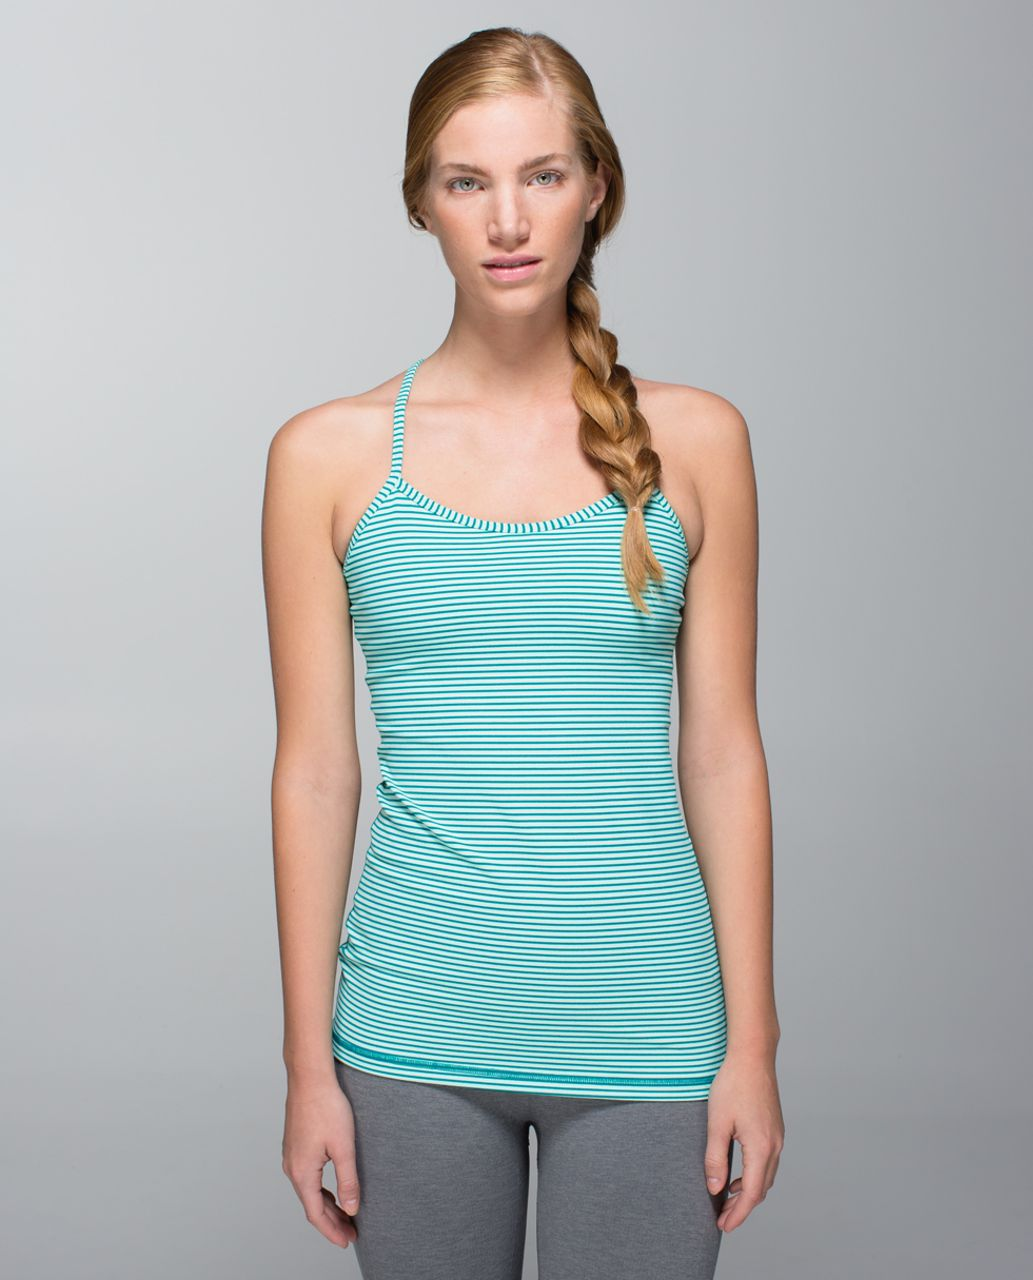 Lululemon Power Y Tank *Luon - Hyper Stripe Toothpaste Real Teal